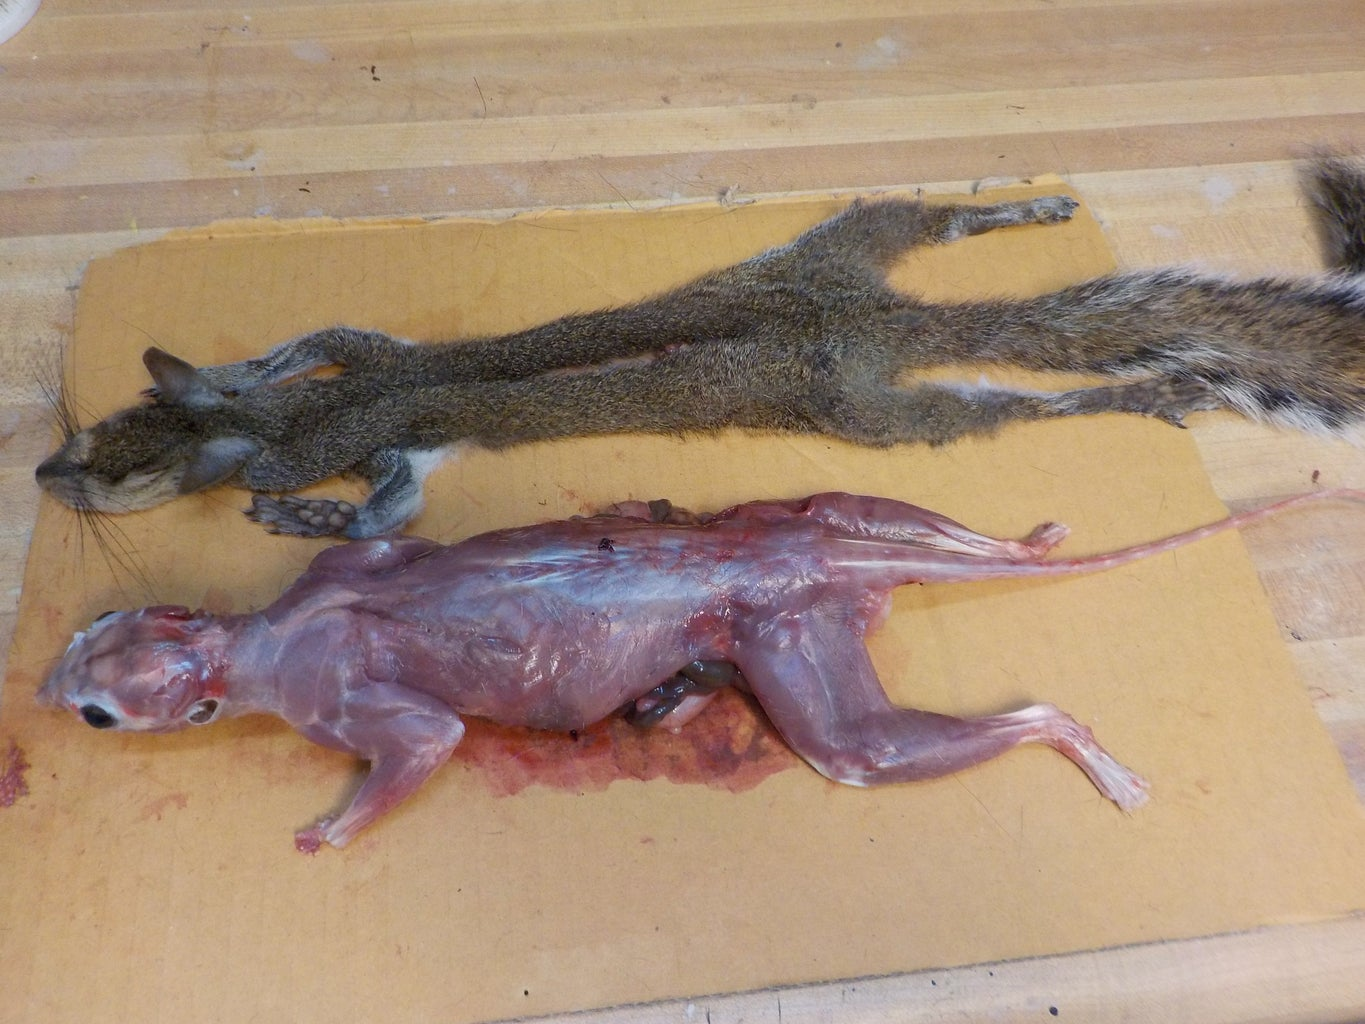 Skinning the Head - Eyes and Mouth